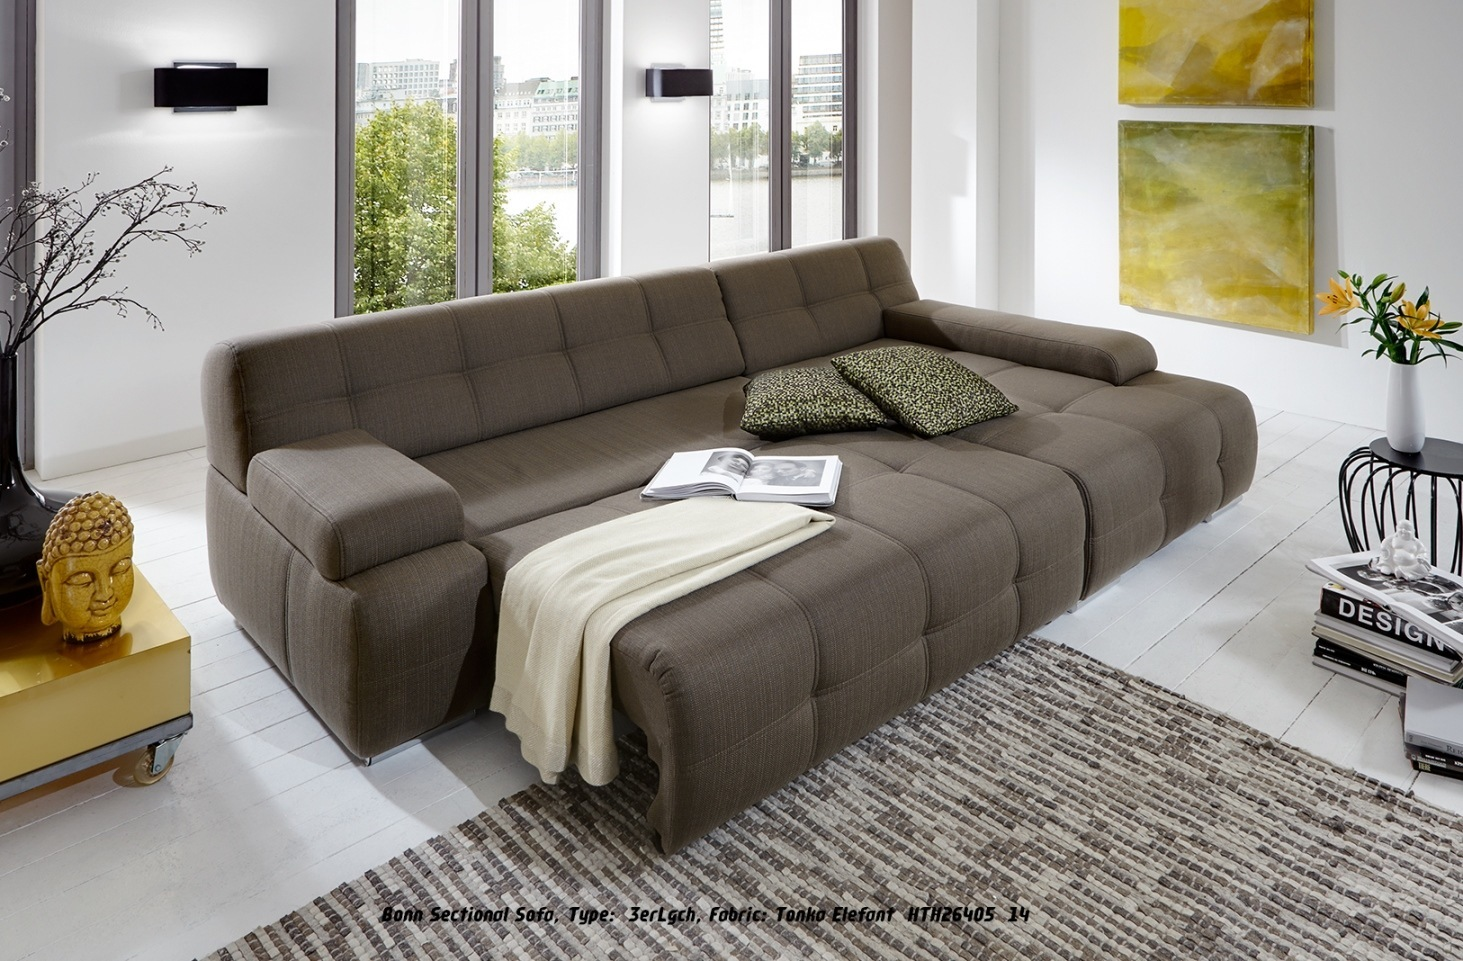 sofa bonn perfect seater sofa in super velvet fabric silver grey with base in brown leather. Black Bedroom Furniture Sets. Home Design Ideas